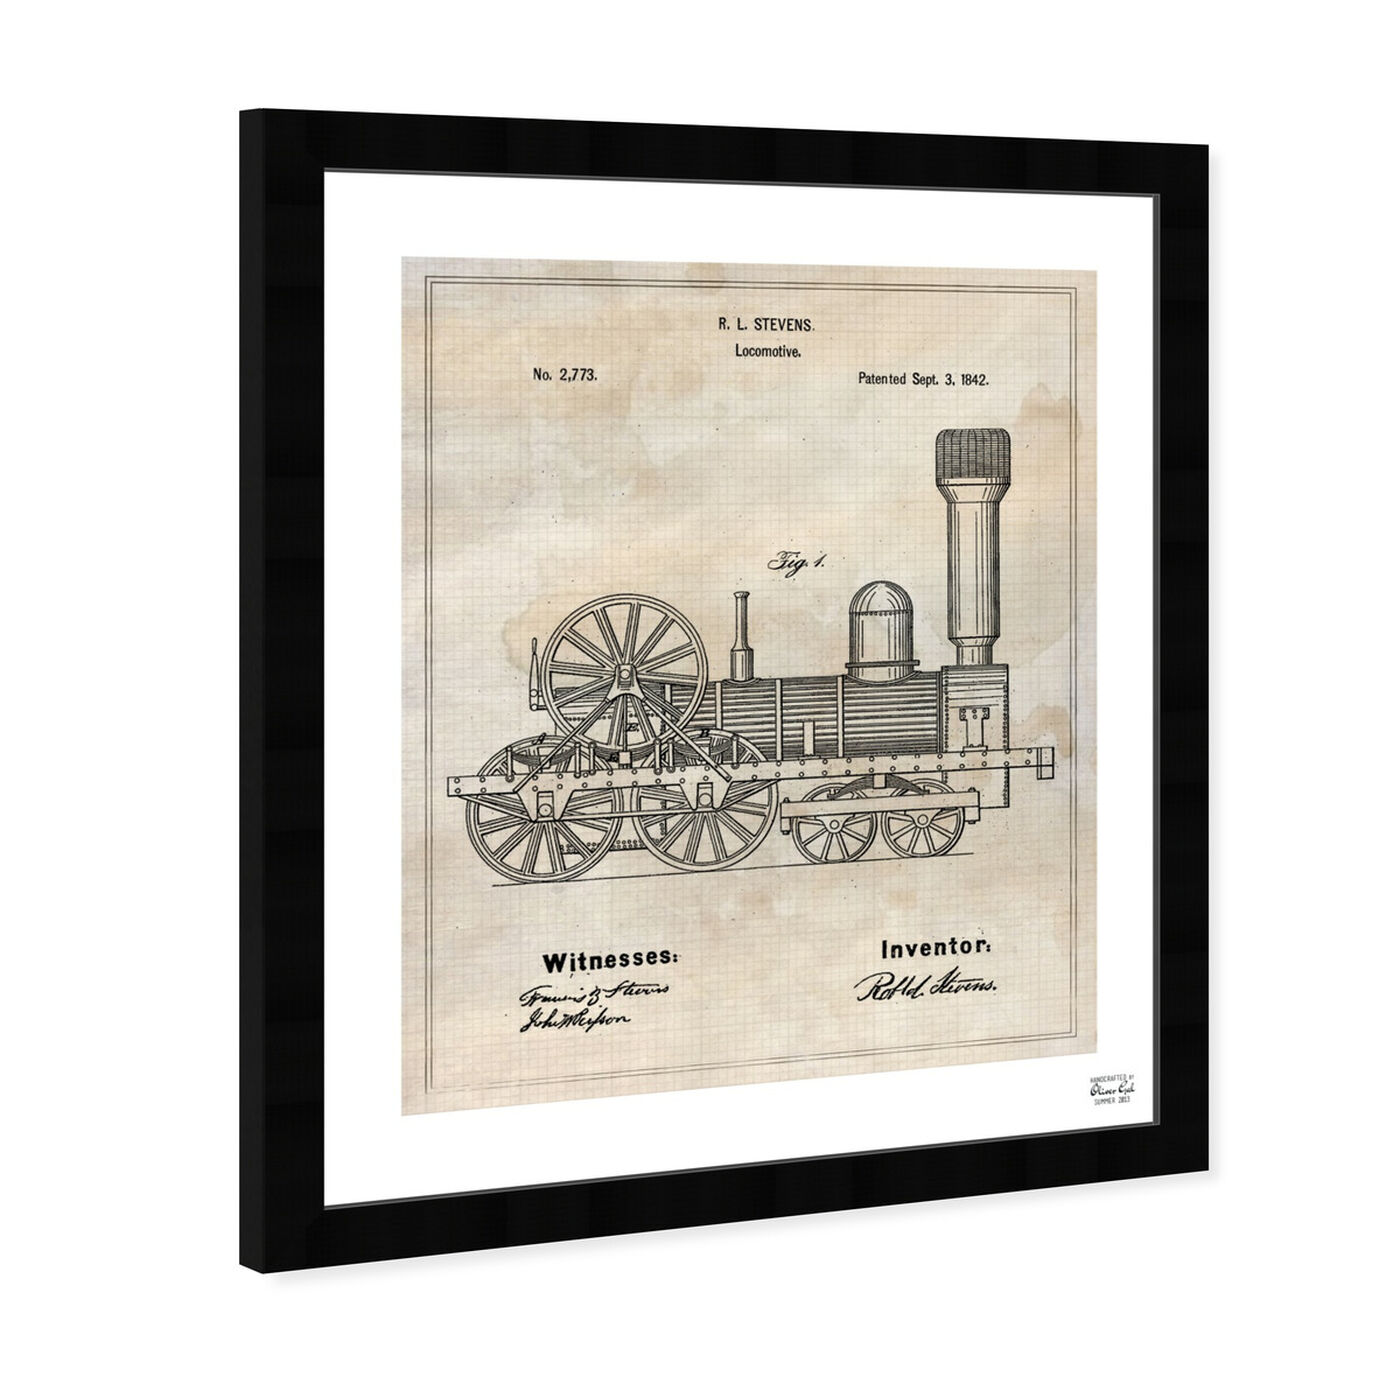 Angled view of Locomotive 1842 featuring transportation and trains art.